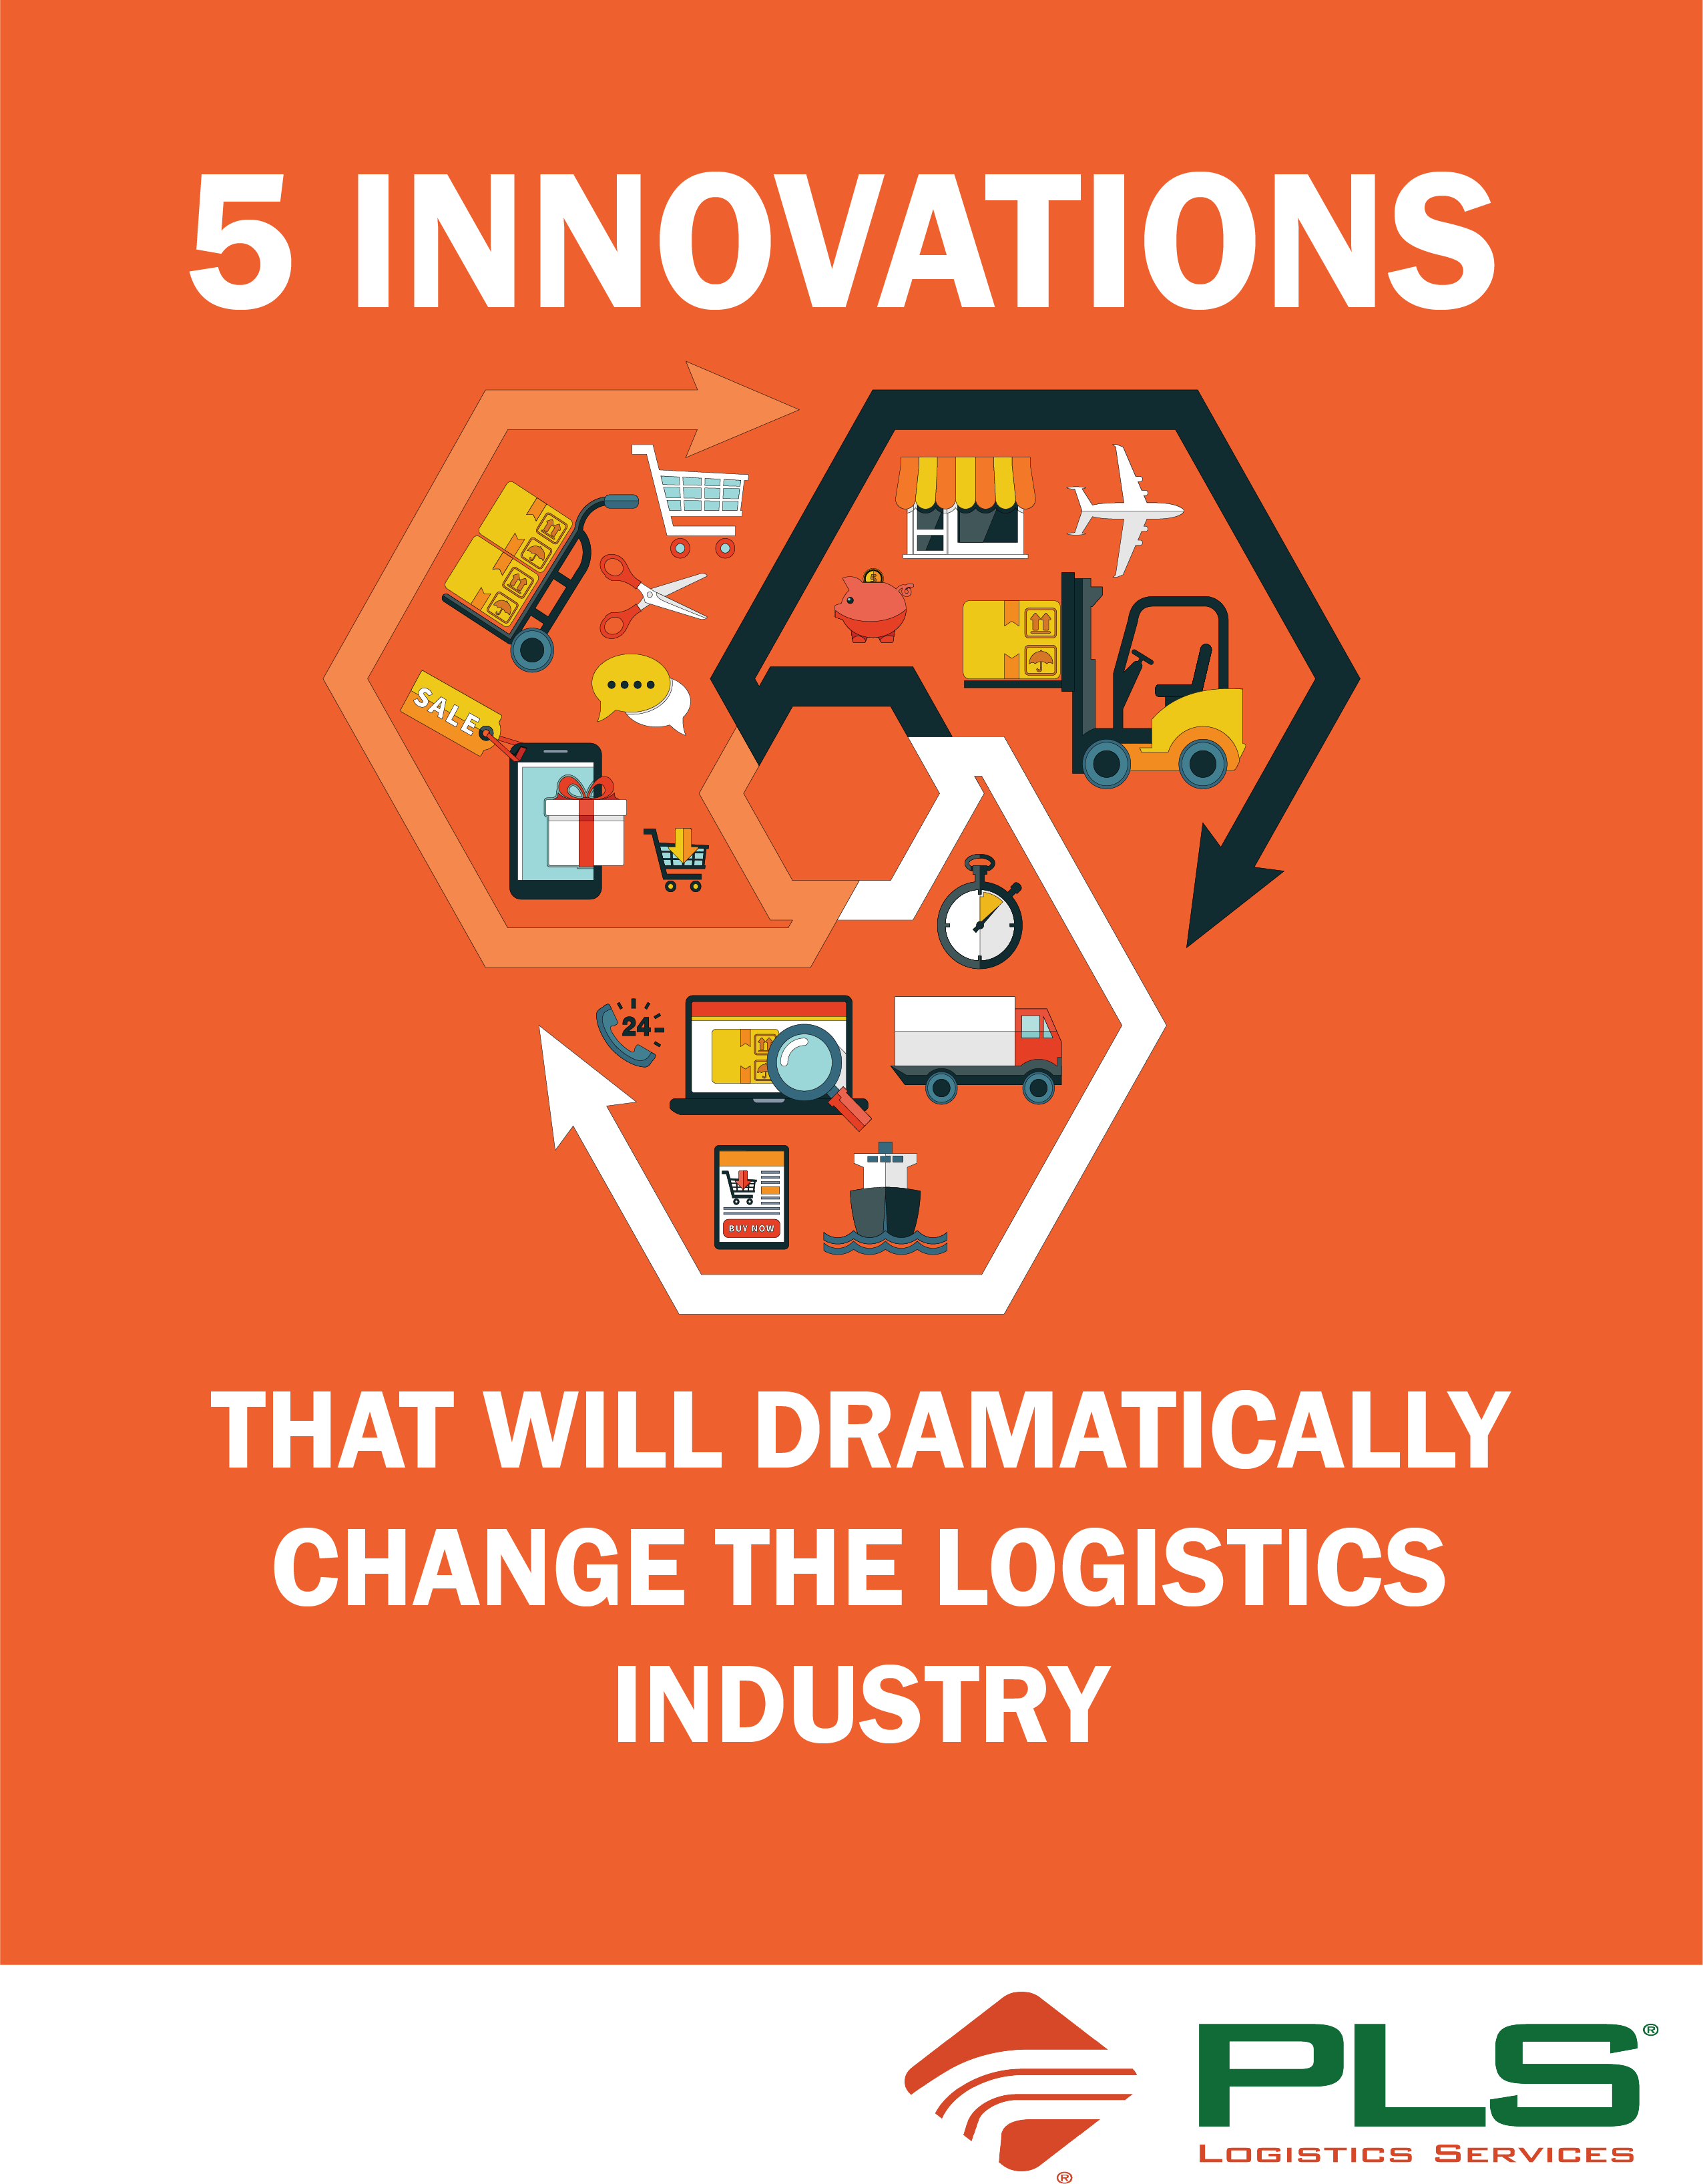 5 Innovations That Will Dramatically Change The Logistics Industry